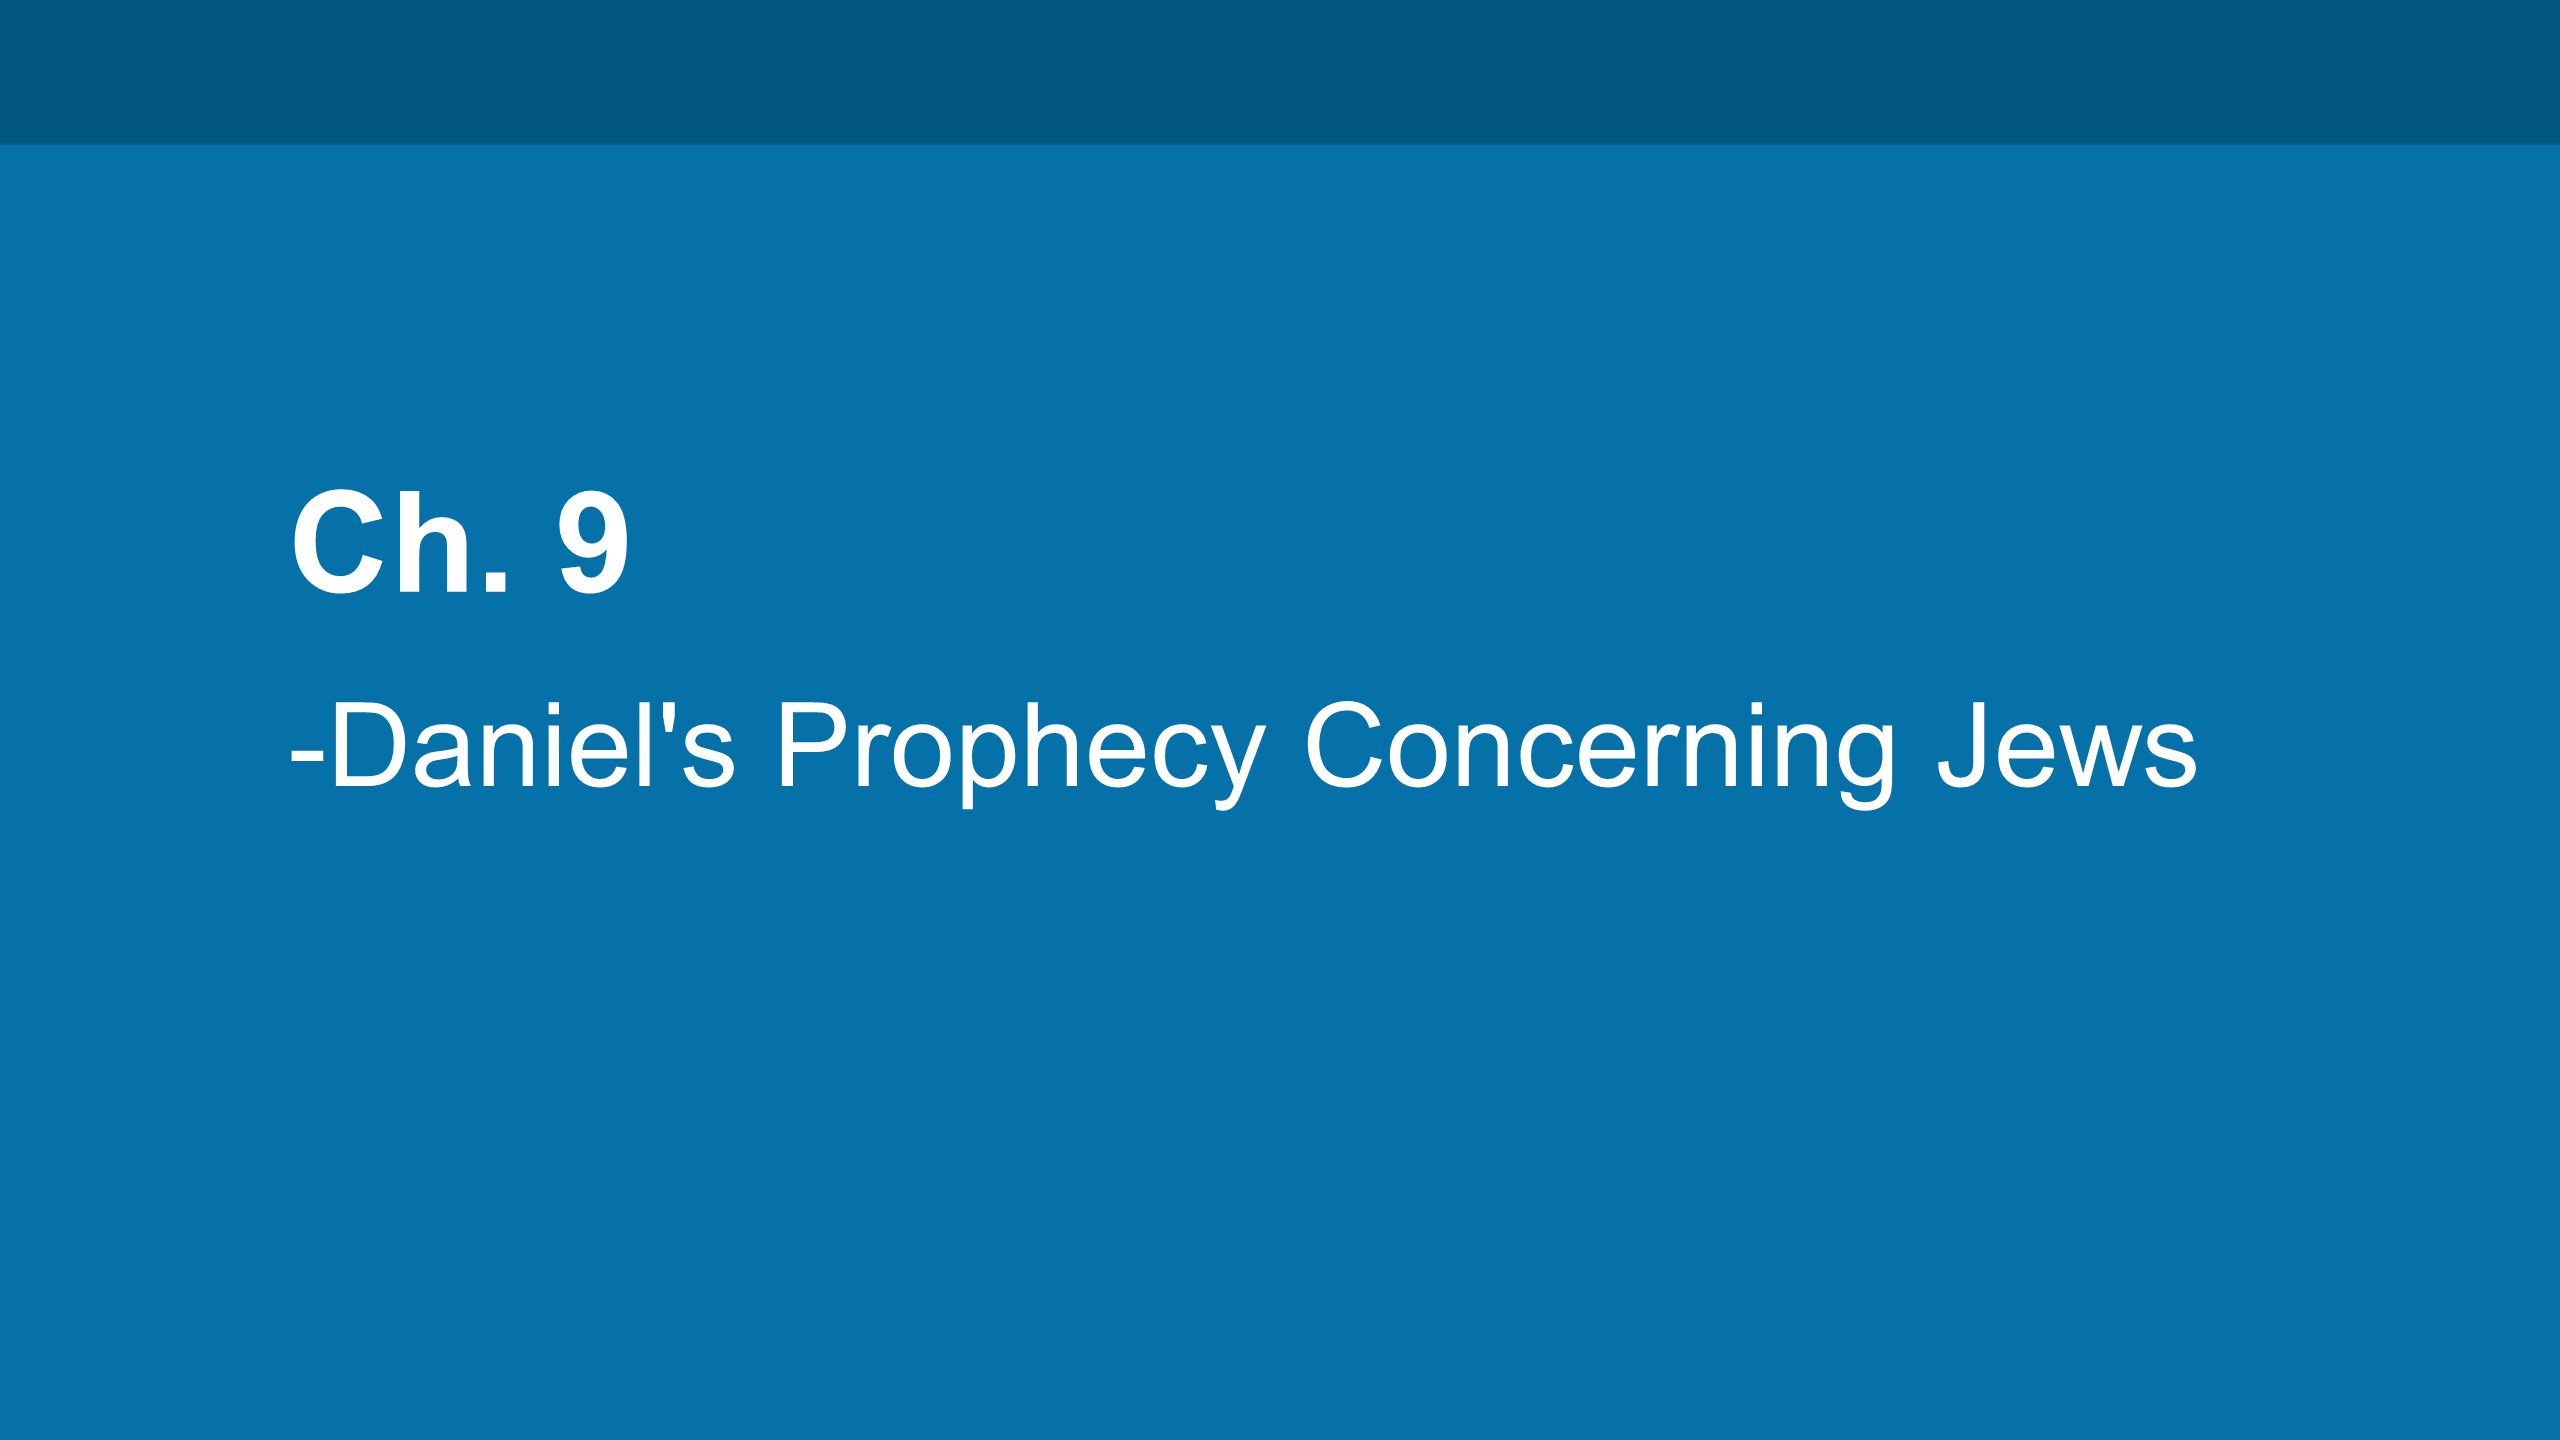 Ch. 9 -Daniel s Prophecy Concerning Jews